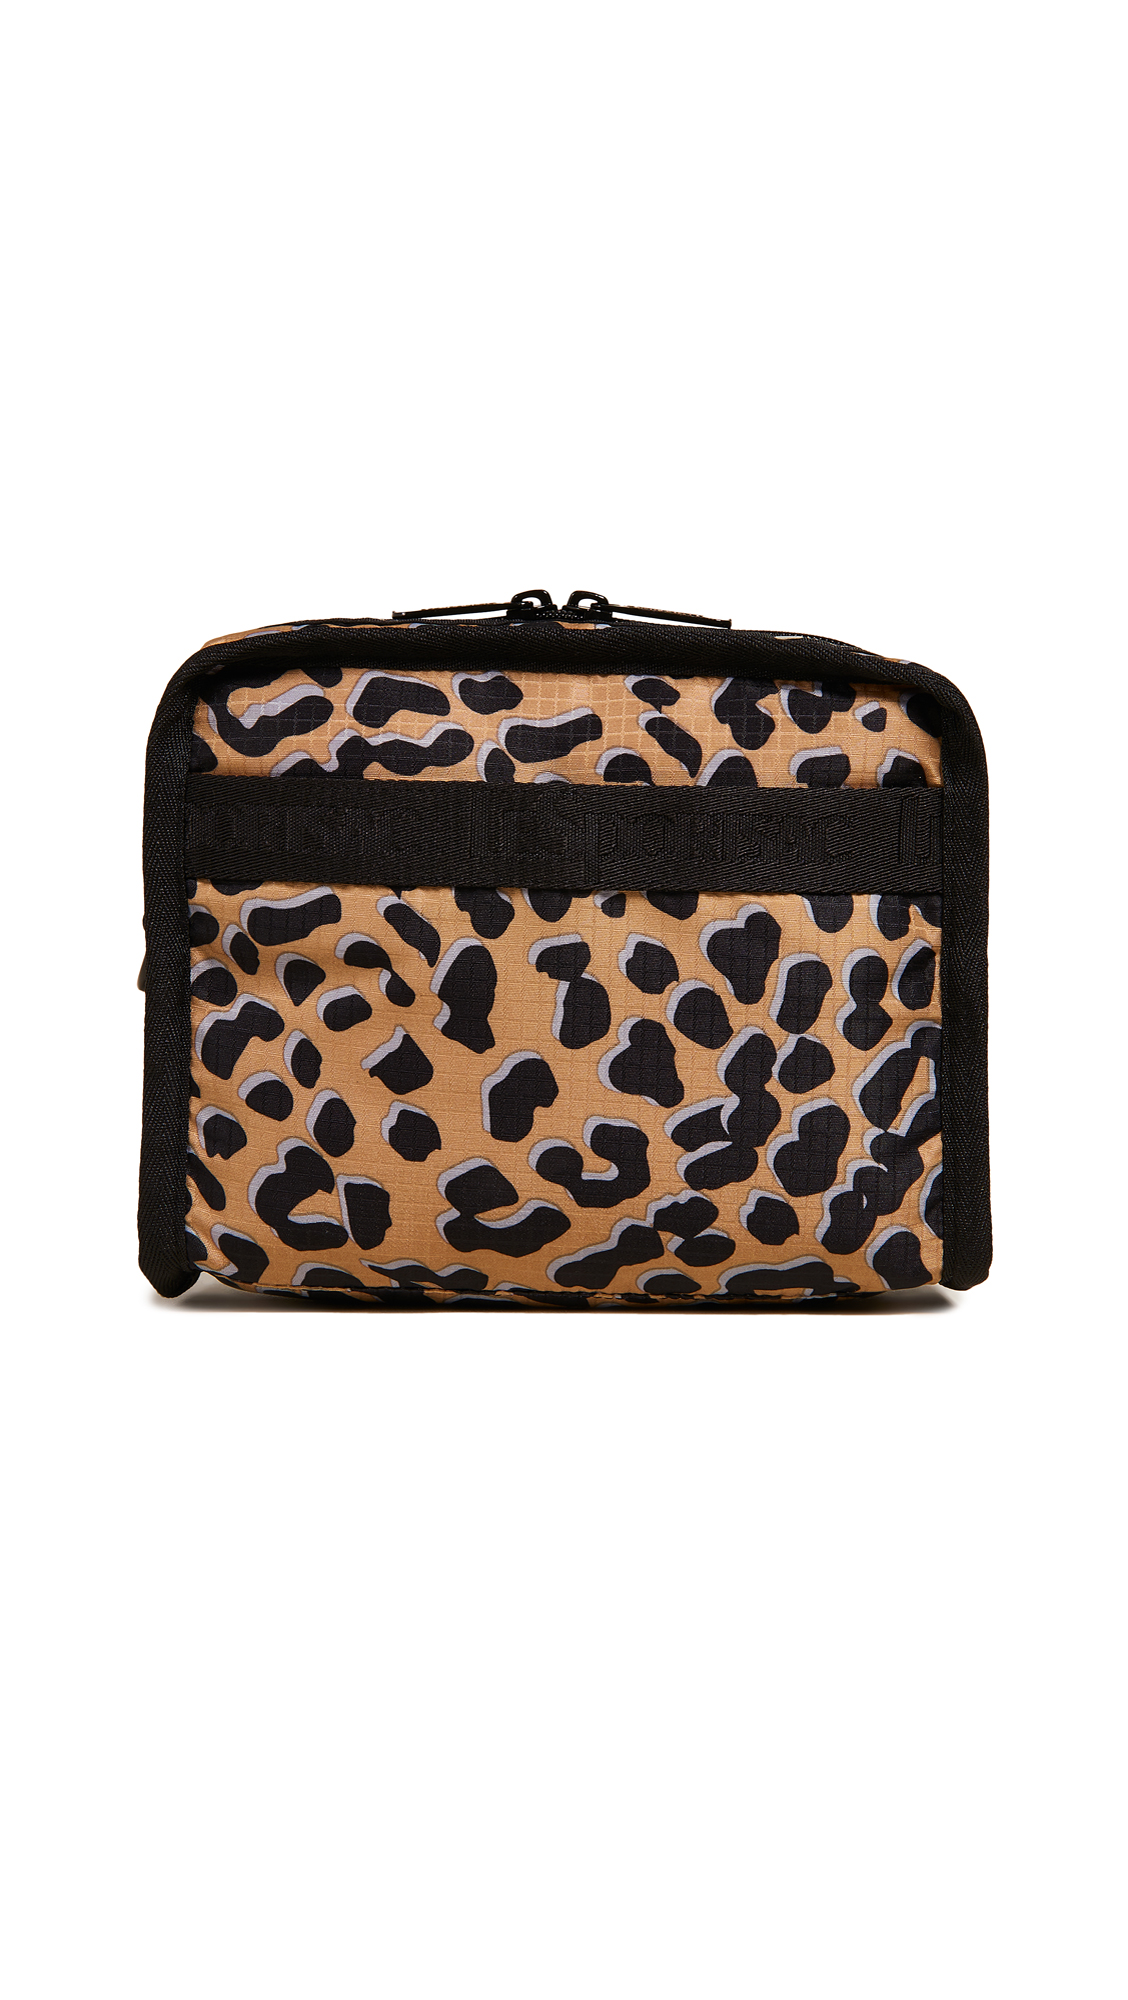 Taylor North / South Cosmetic Bag, Leopard